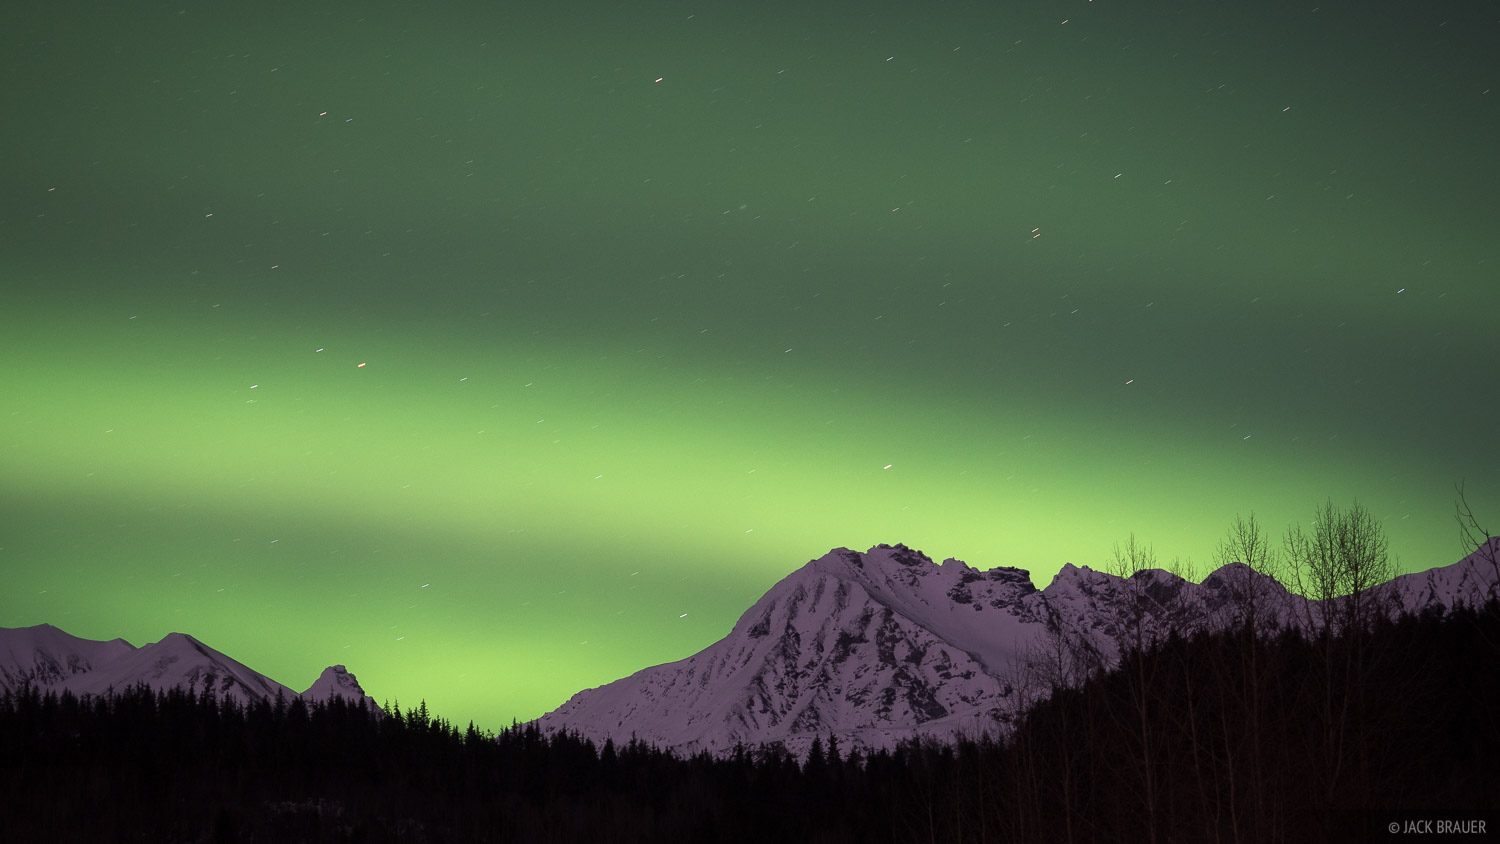 Aurora sighting at the Funny Farm in Haines, Alaska.